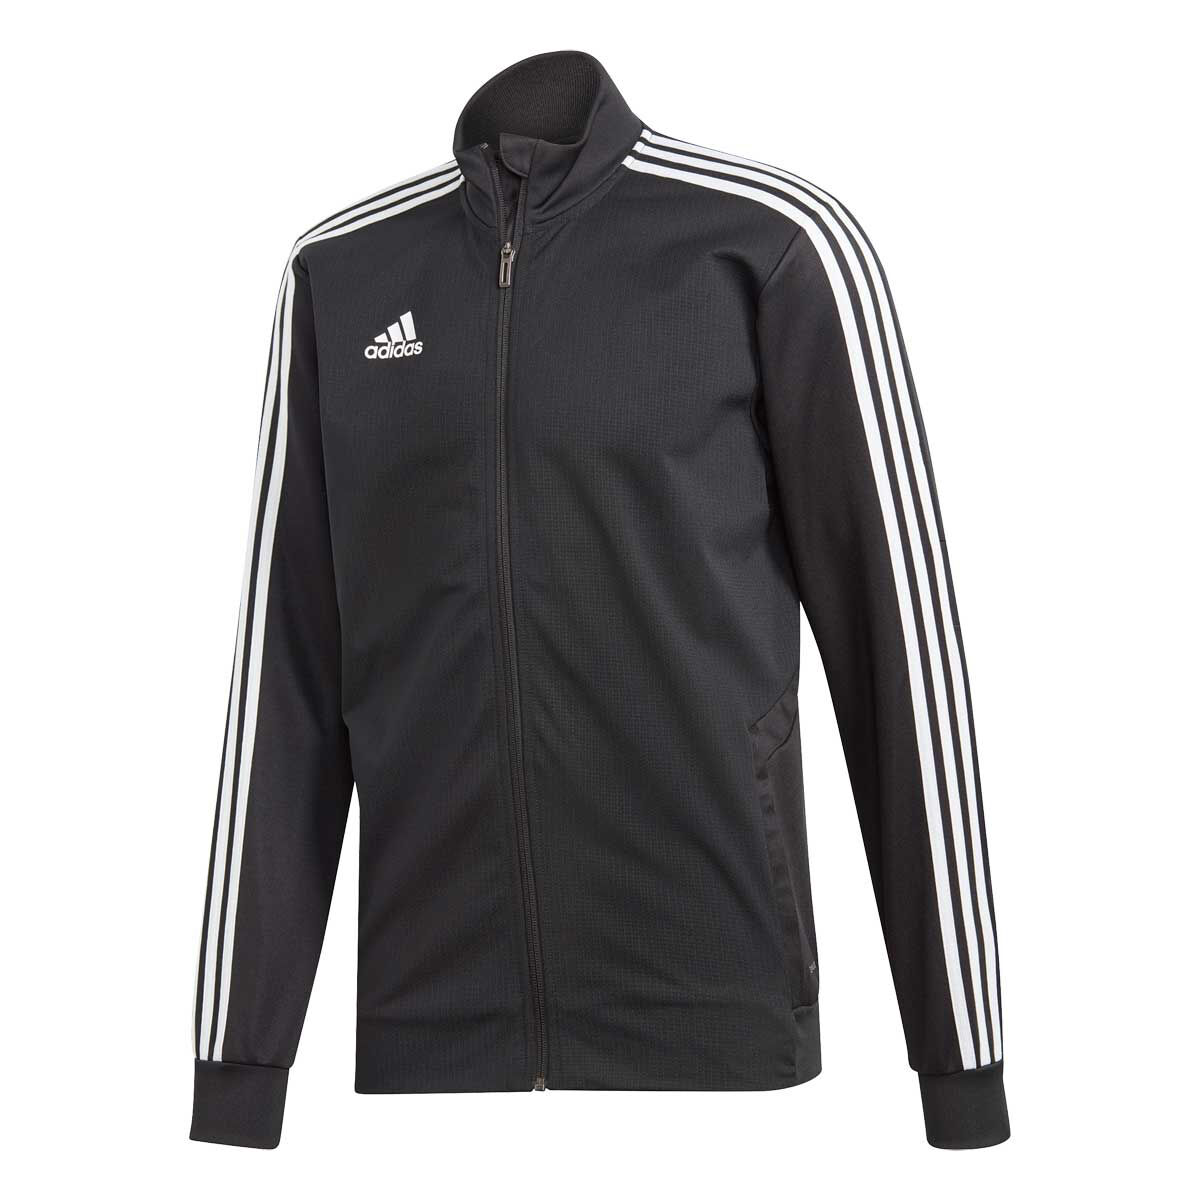 For Men Adidas Performance White Jacket Sports Style